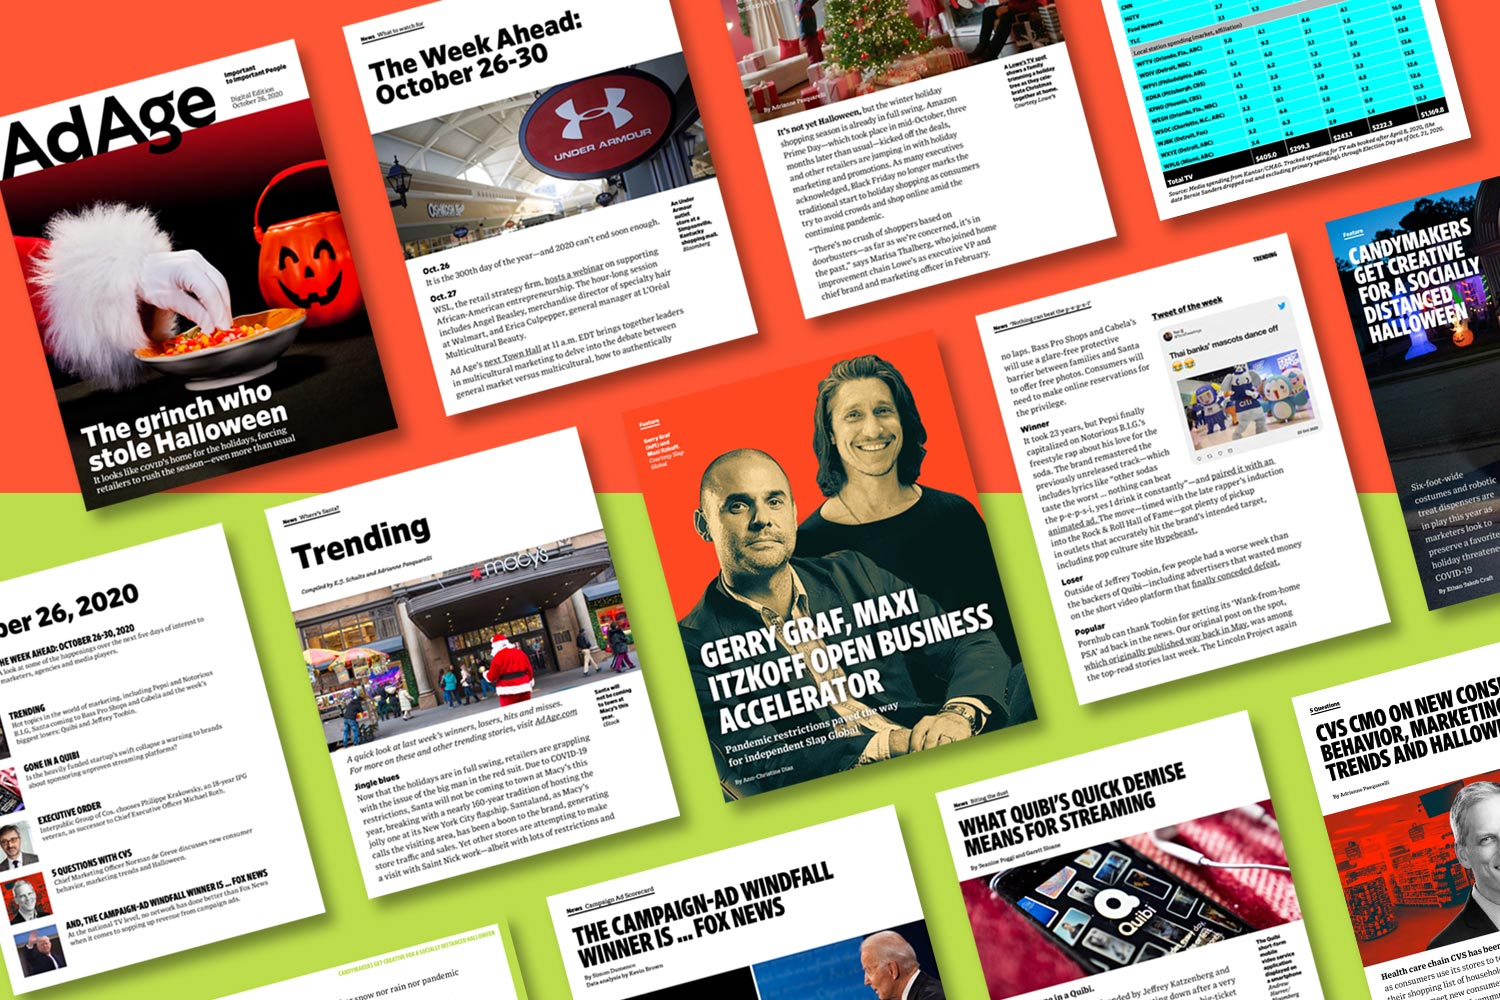 Retailers rush the season as Christmas creeps up on Halloween: Ad Age Digital Edition